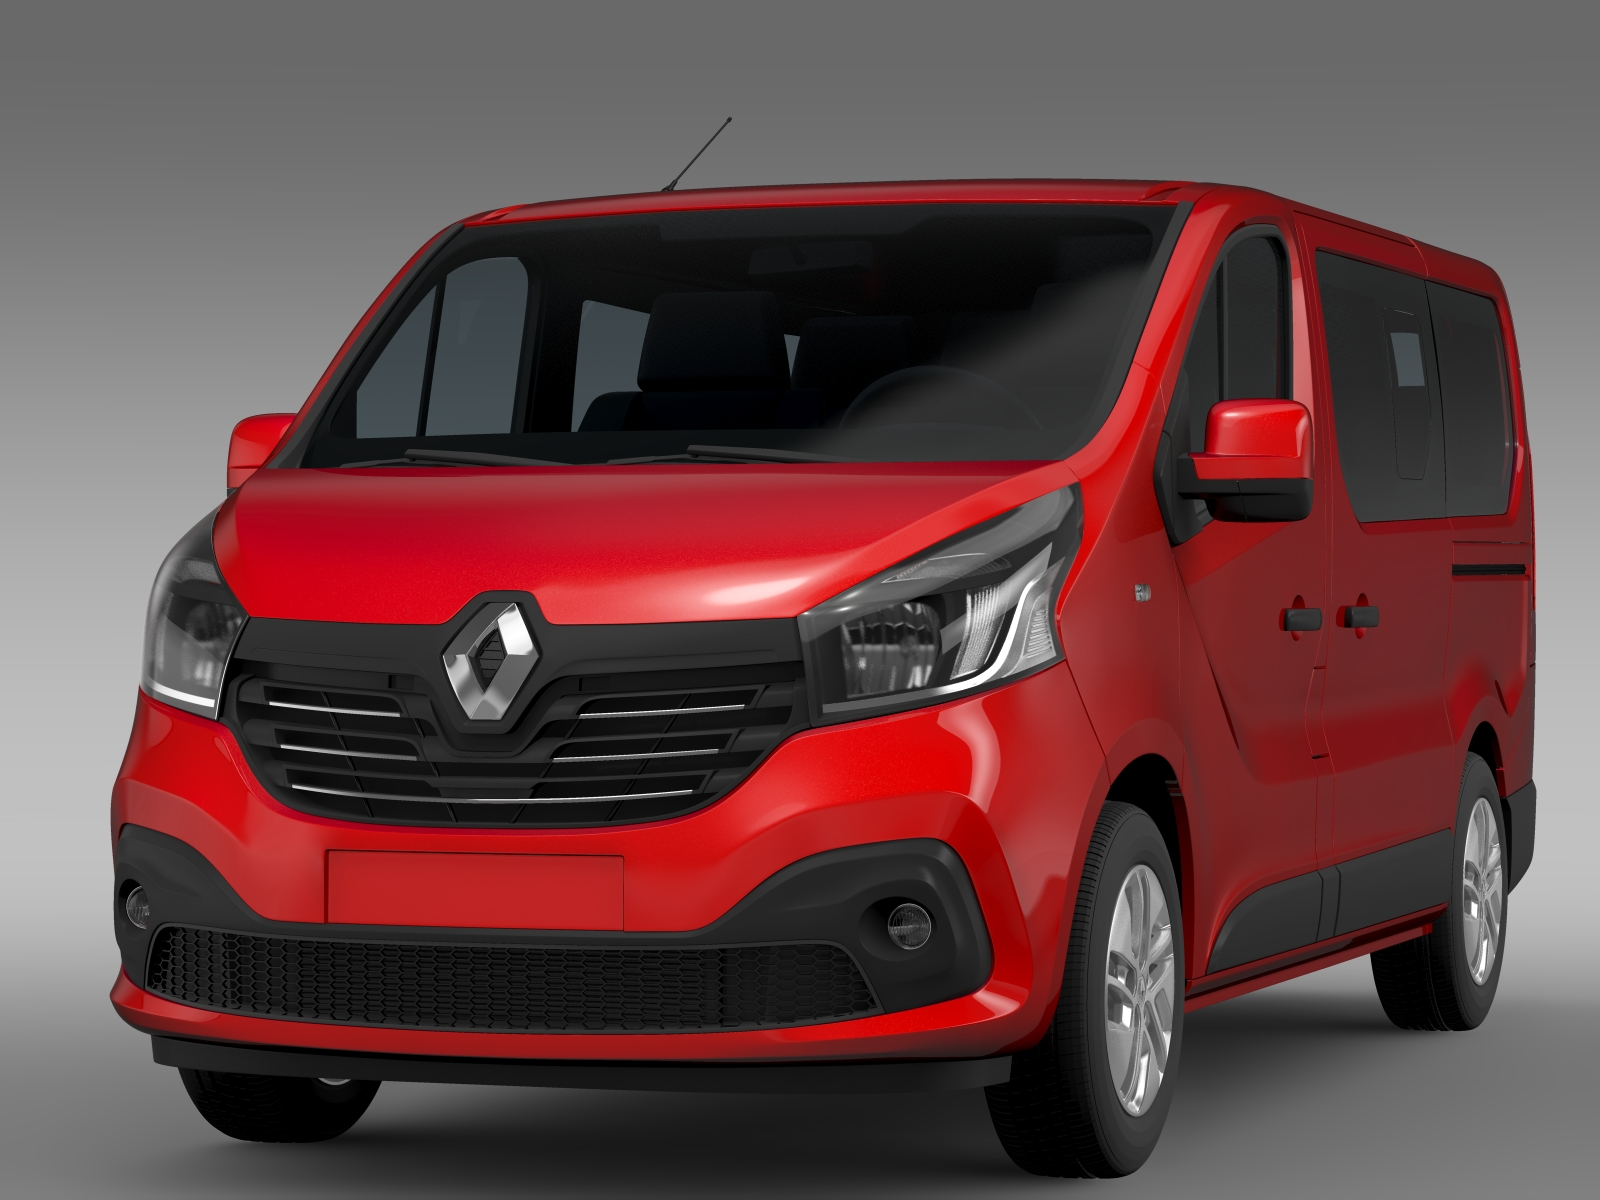 renault trafic minibus 2015 3d model buy renault trafic minibus 2015 3d model flatpyramid. Black Bedroom Furniture Sets. Home Design Ideas